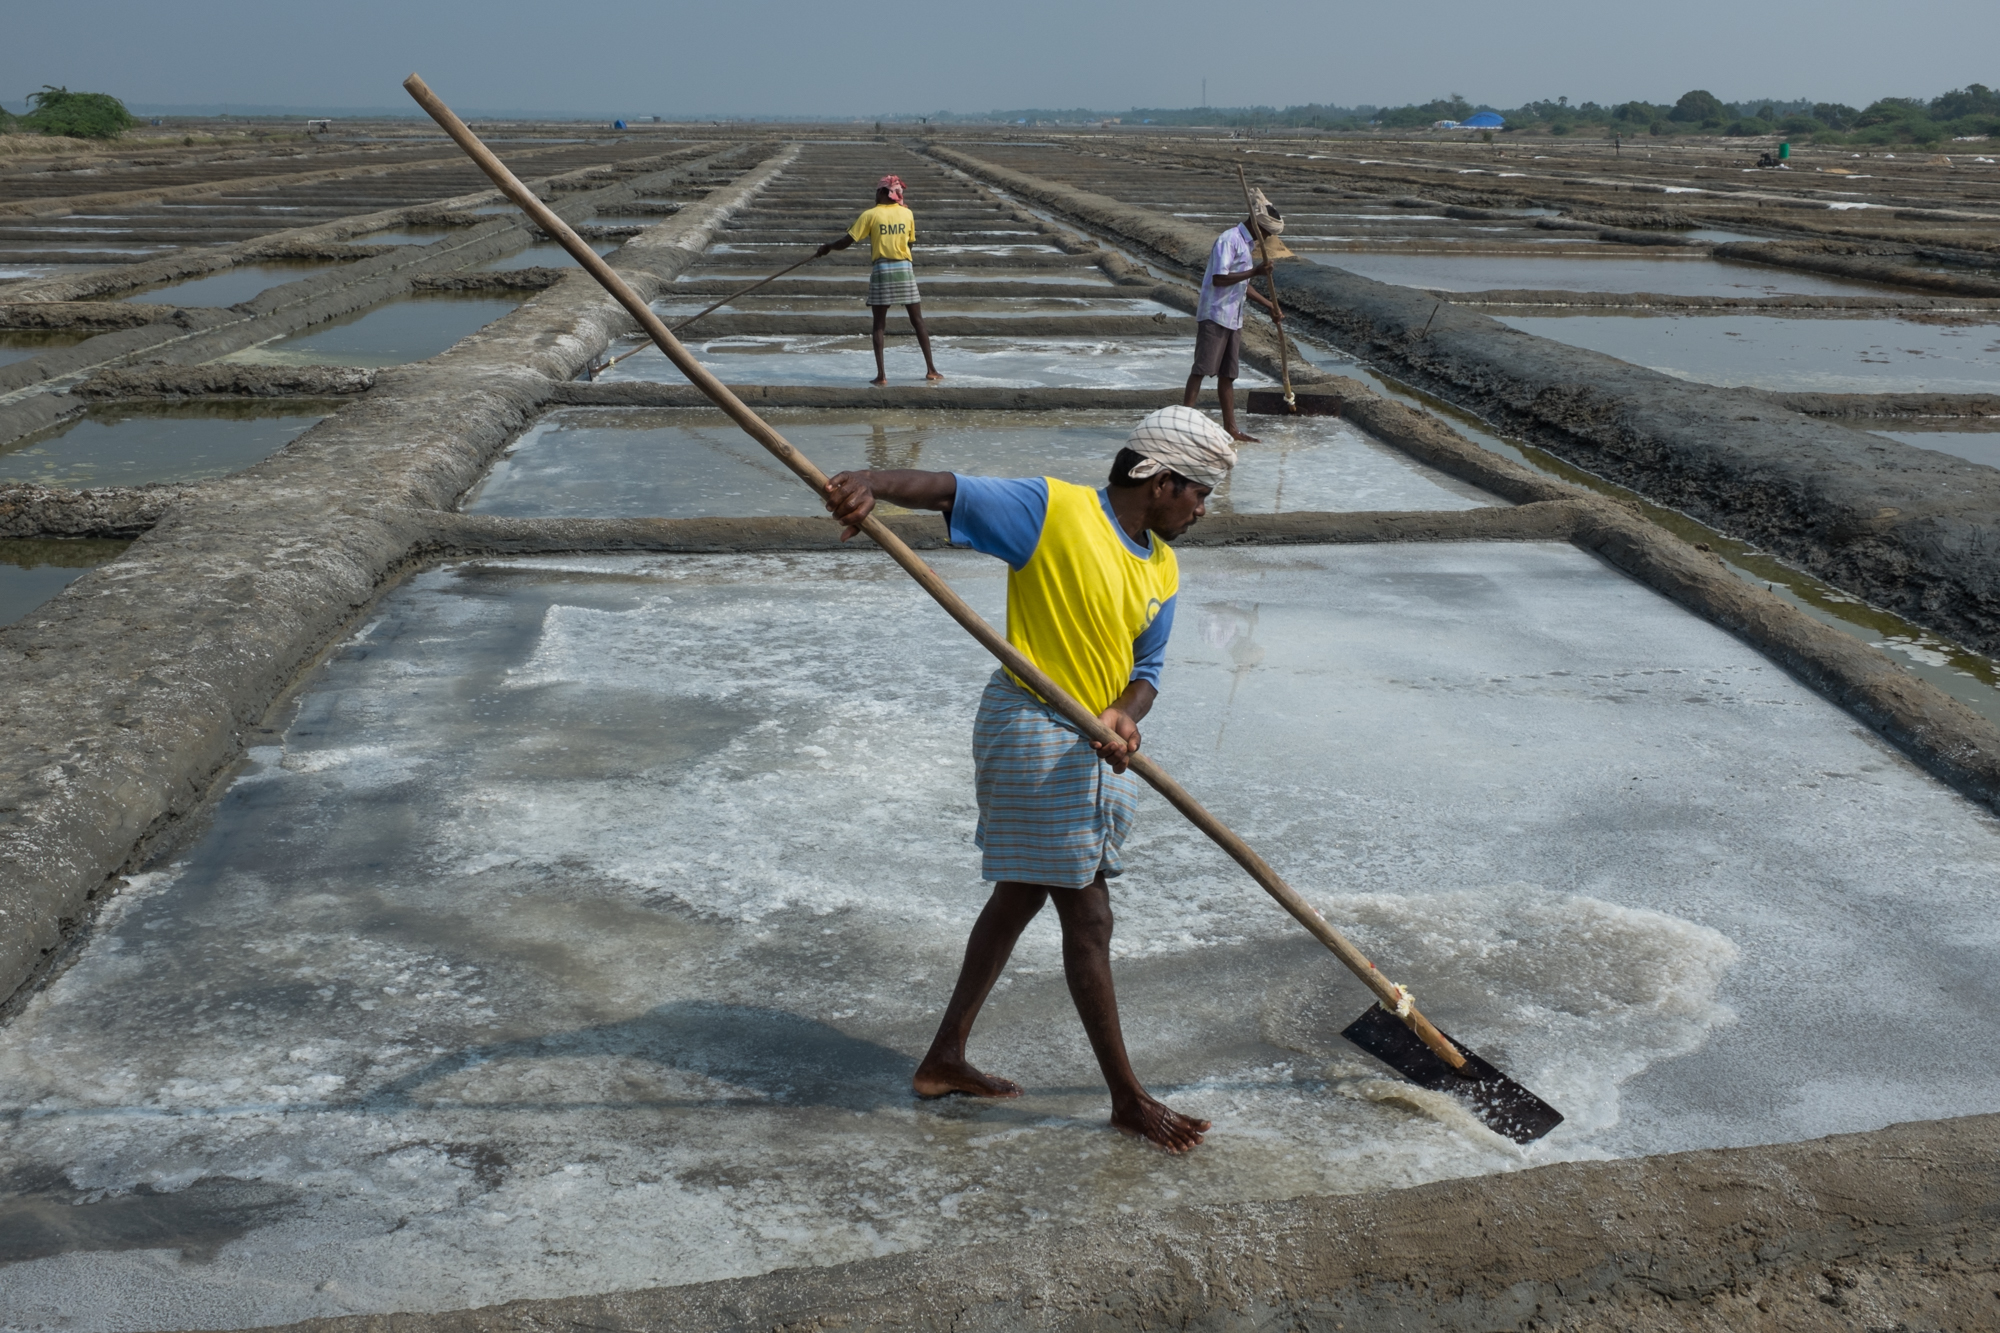 Men and women workers scrape, haul and carry salt in Marakannum, Tamil Nadu, India.